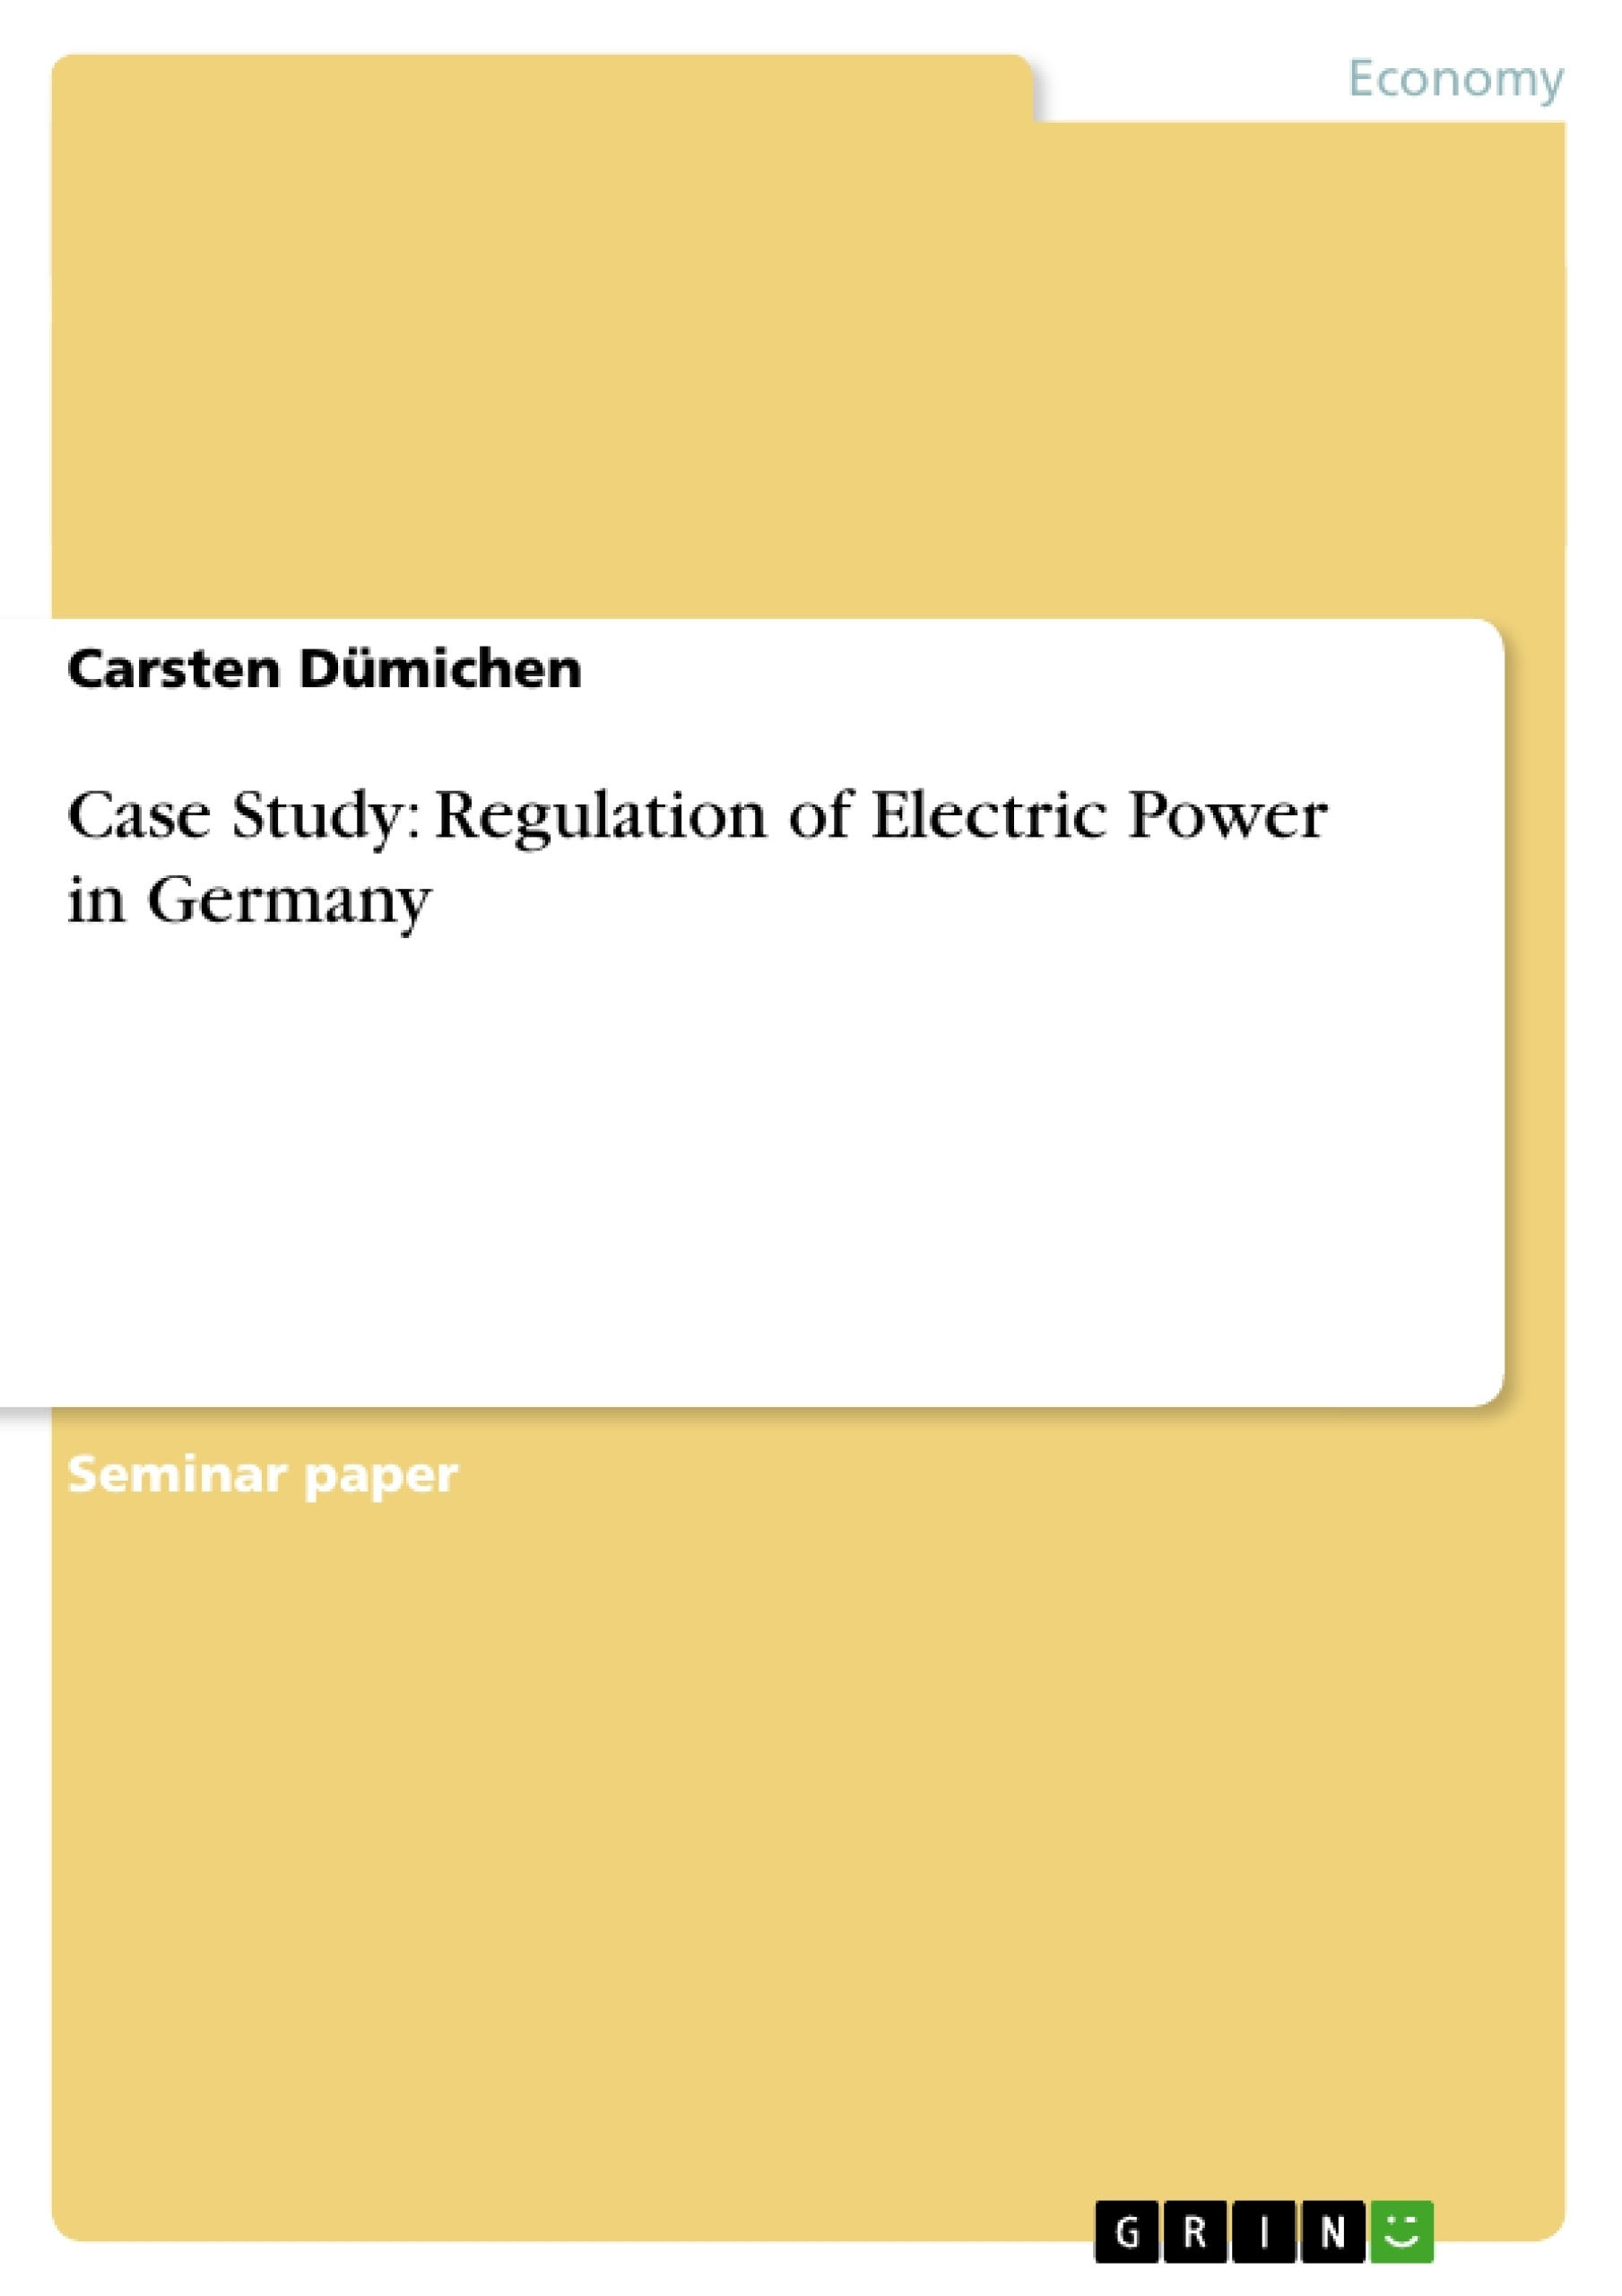 Title: Case Study: Regulation of Electric Power in Germany